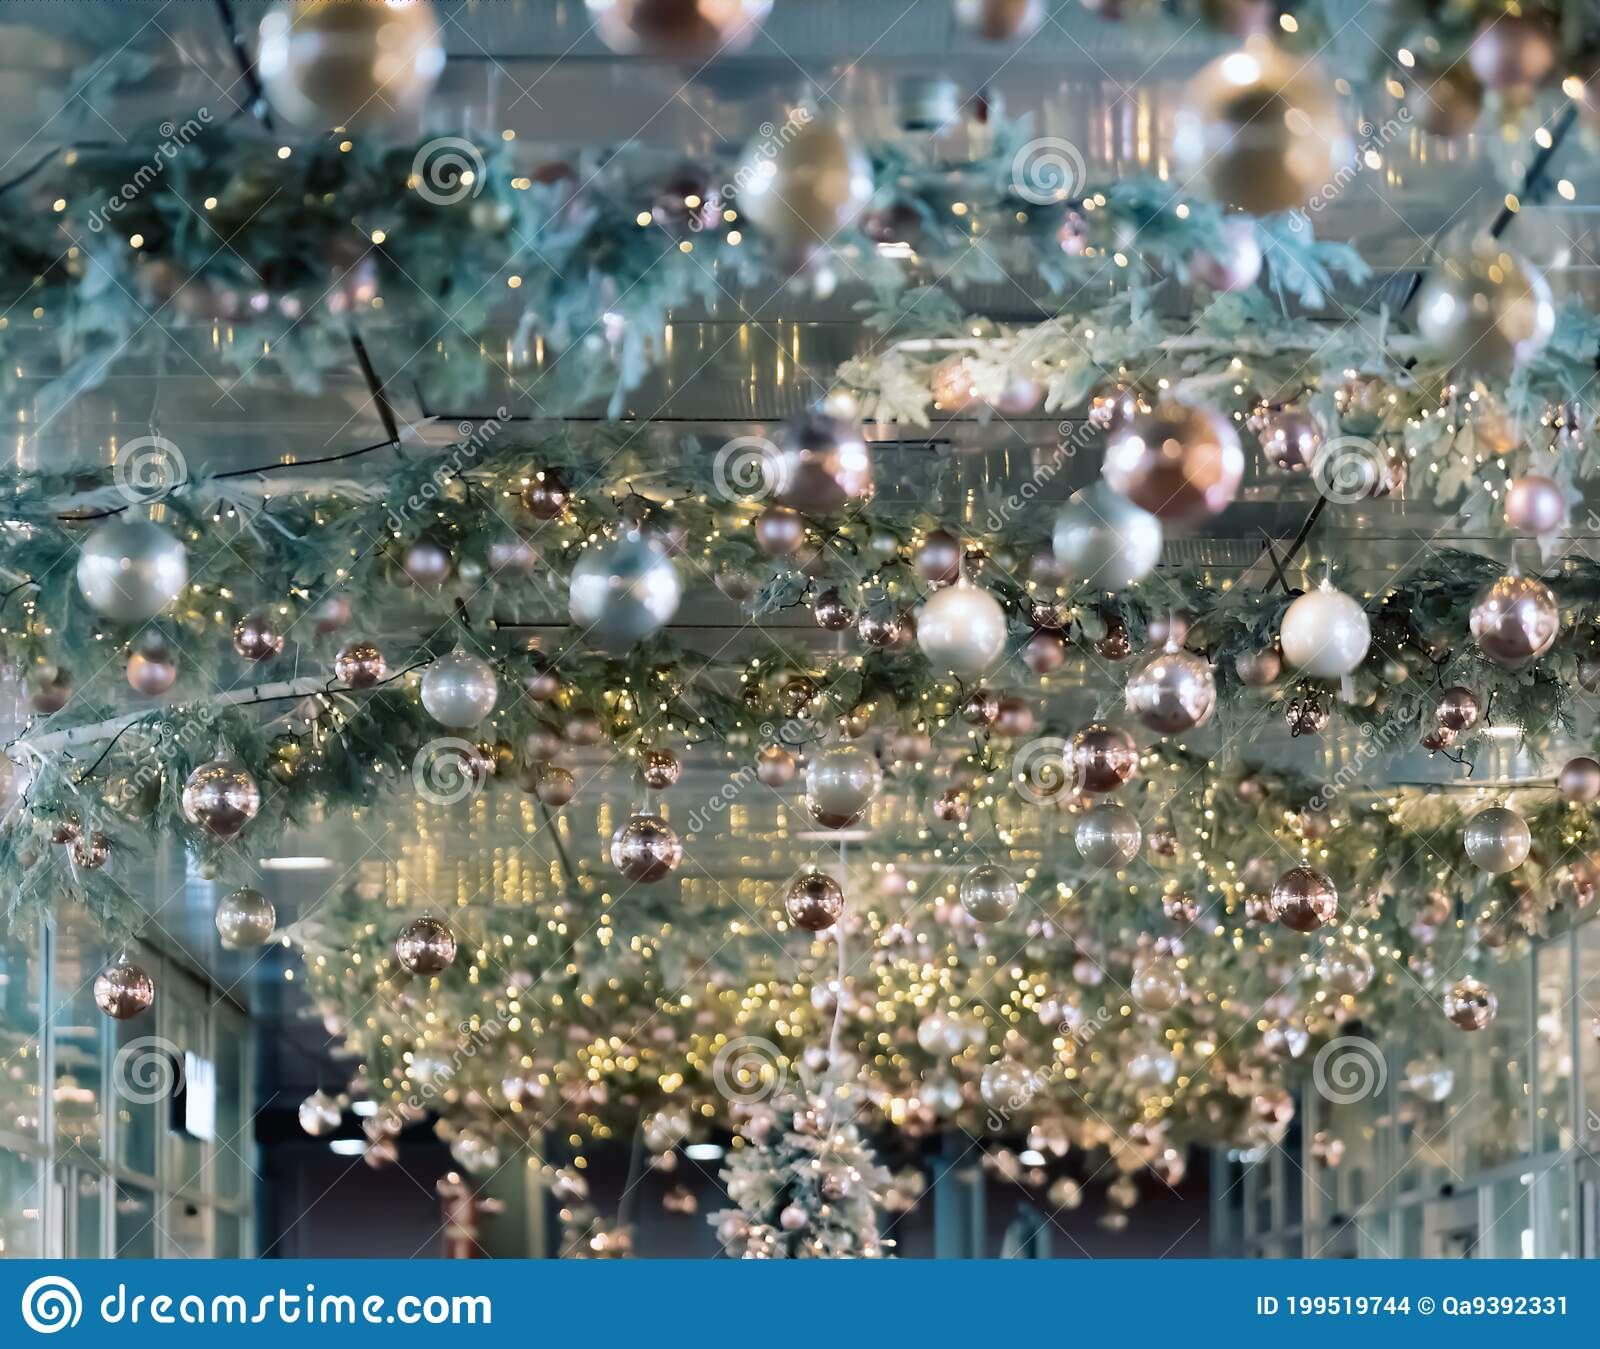 627 Christmas Decorations Ceiling Photos Free Royalty Free Stock Photos From Dreamstime